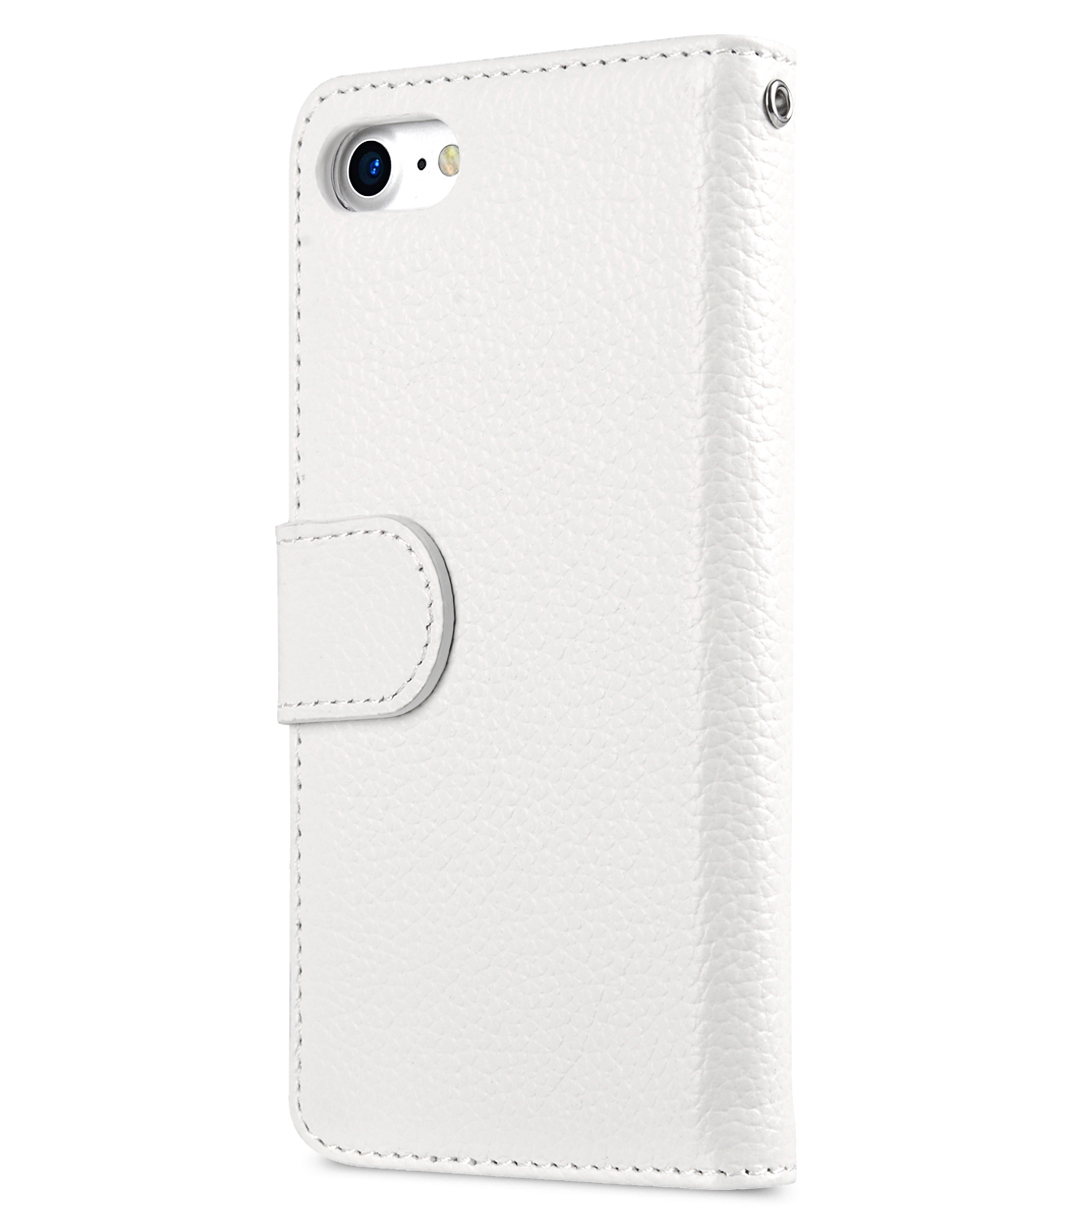 """Melkco Premium Leather Case for Apple iPhone 7 / 8 (4.7"""") - Wallet Book ID Slot Type (White LC)"""